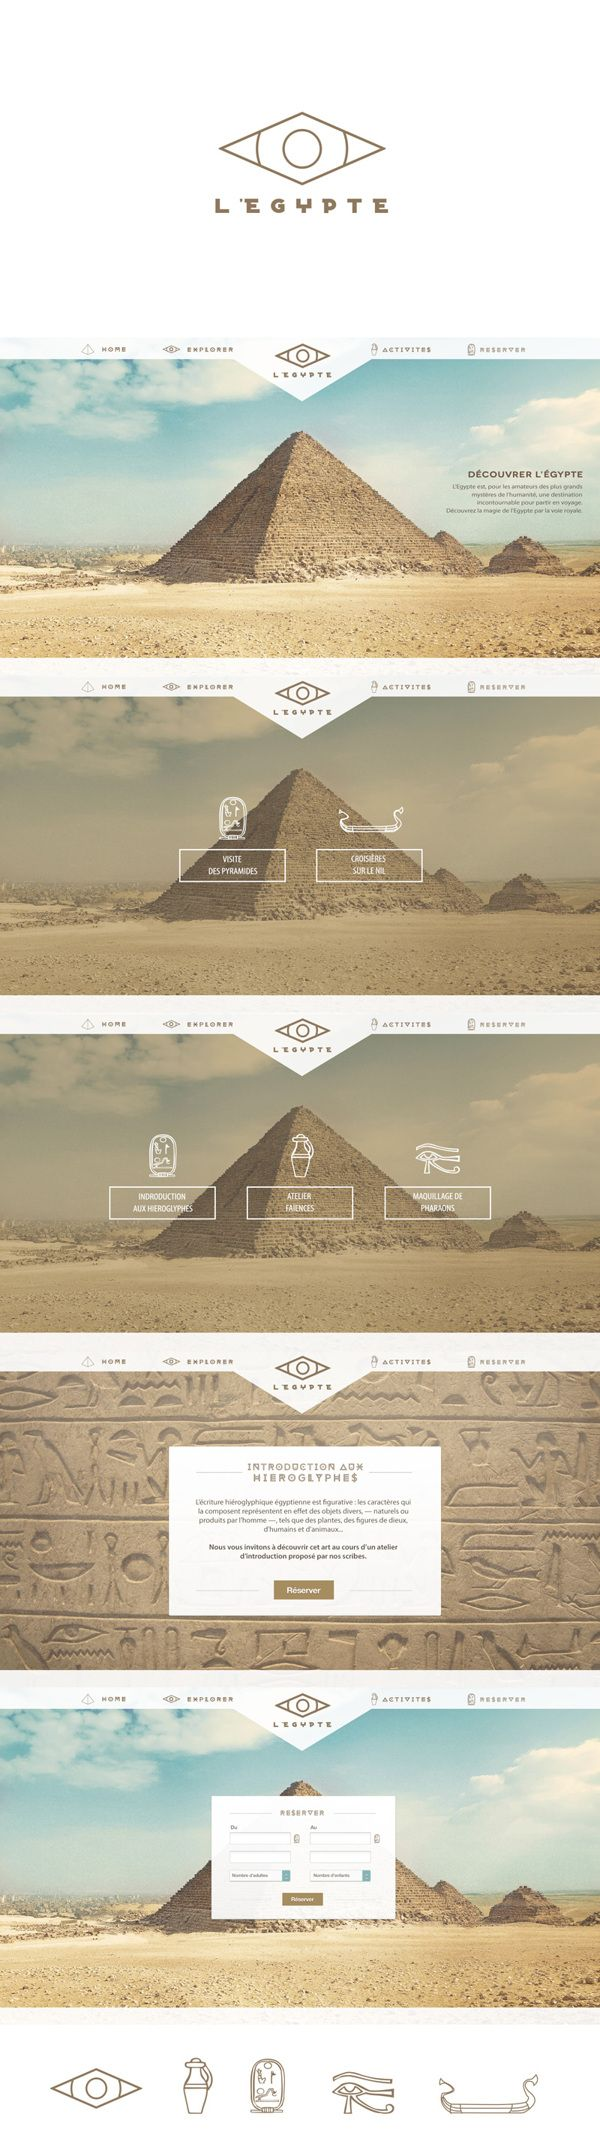 Egypt by Lawdi , via Behance Cool web design #web #WebDesign #design #creative #website #awesome #inspiration